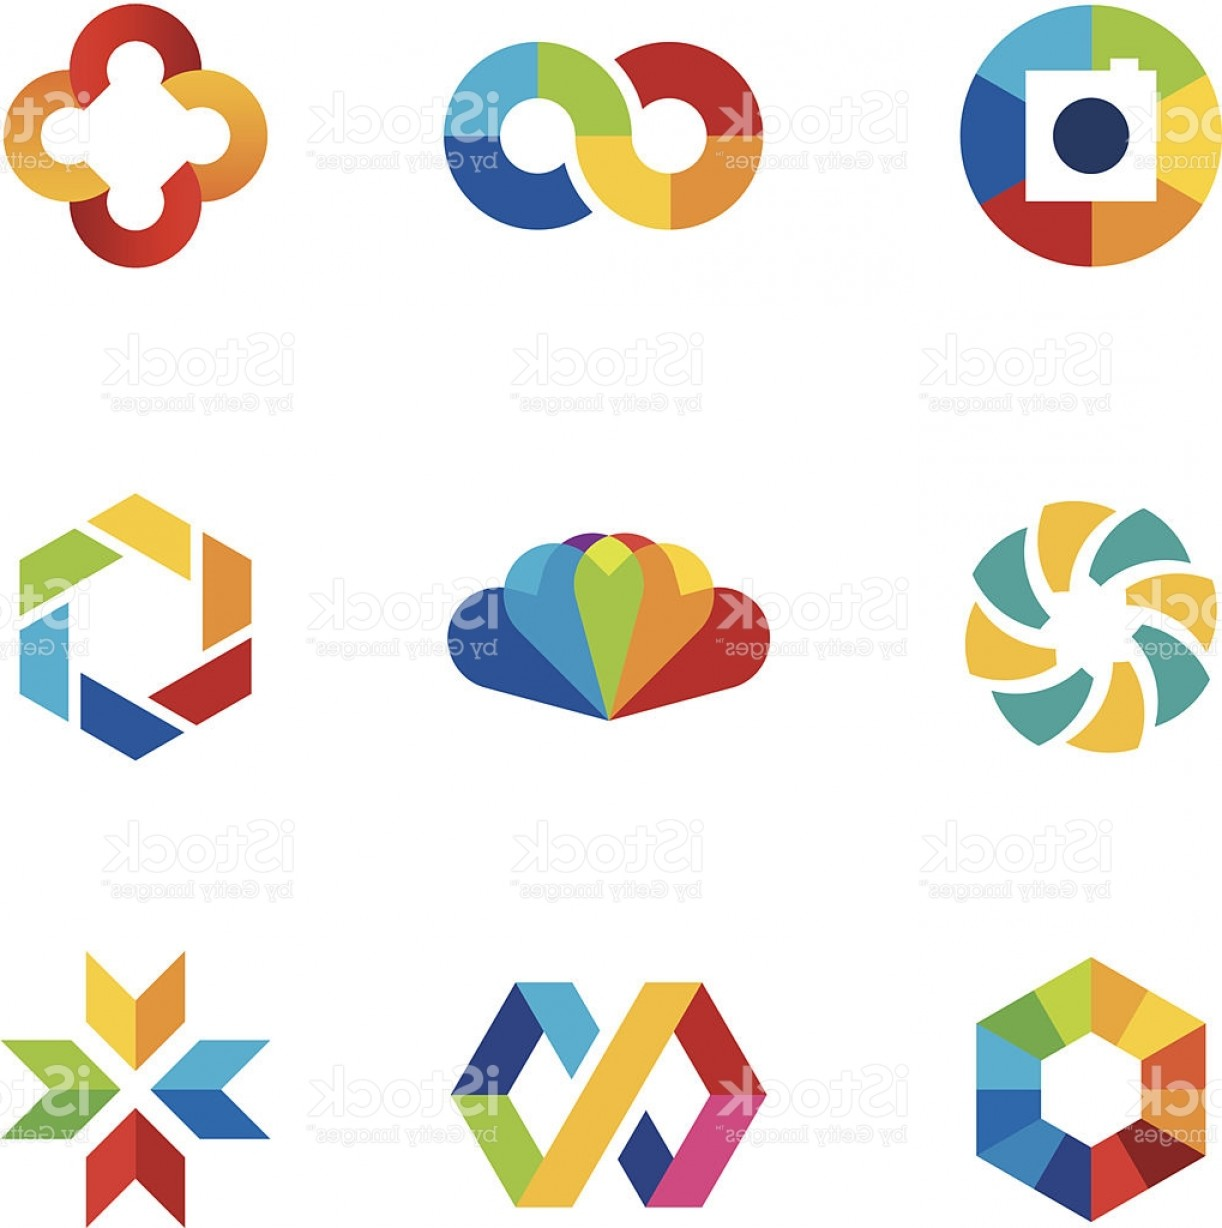 Share Logo Vector: Color Capture Imagination Limitless Education Share Community Logo Icon Set Gm